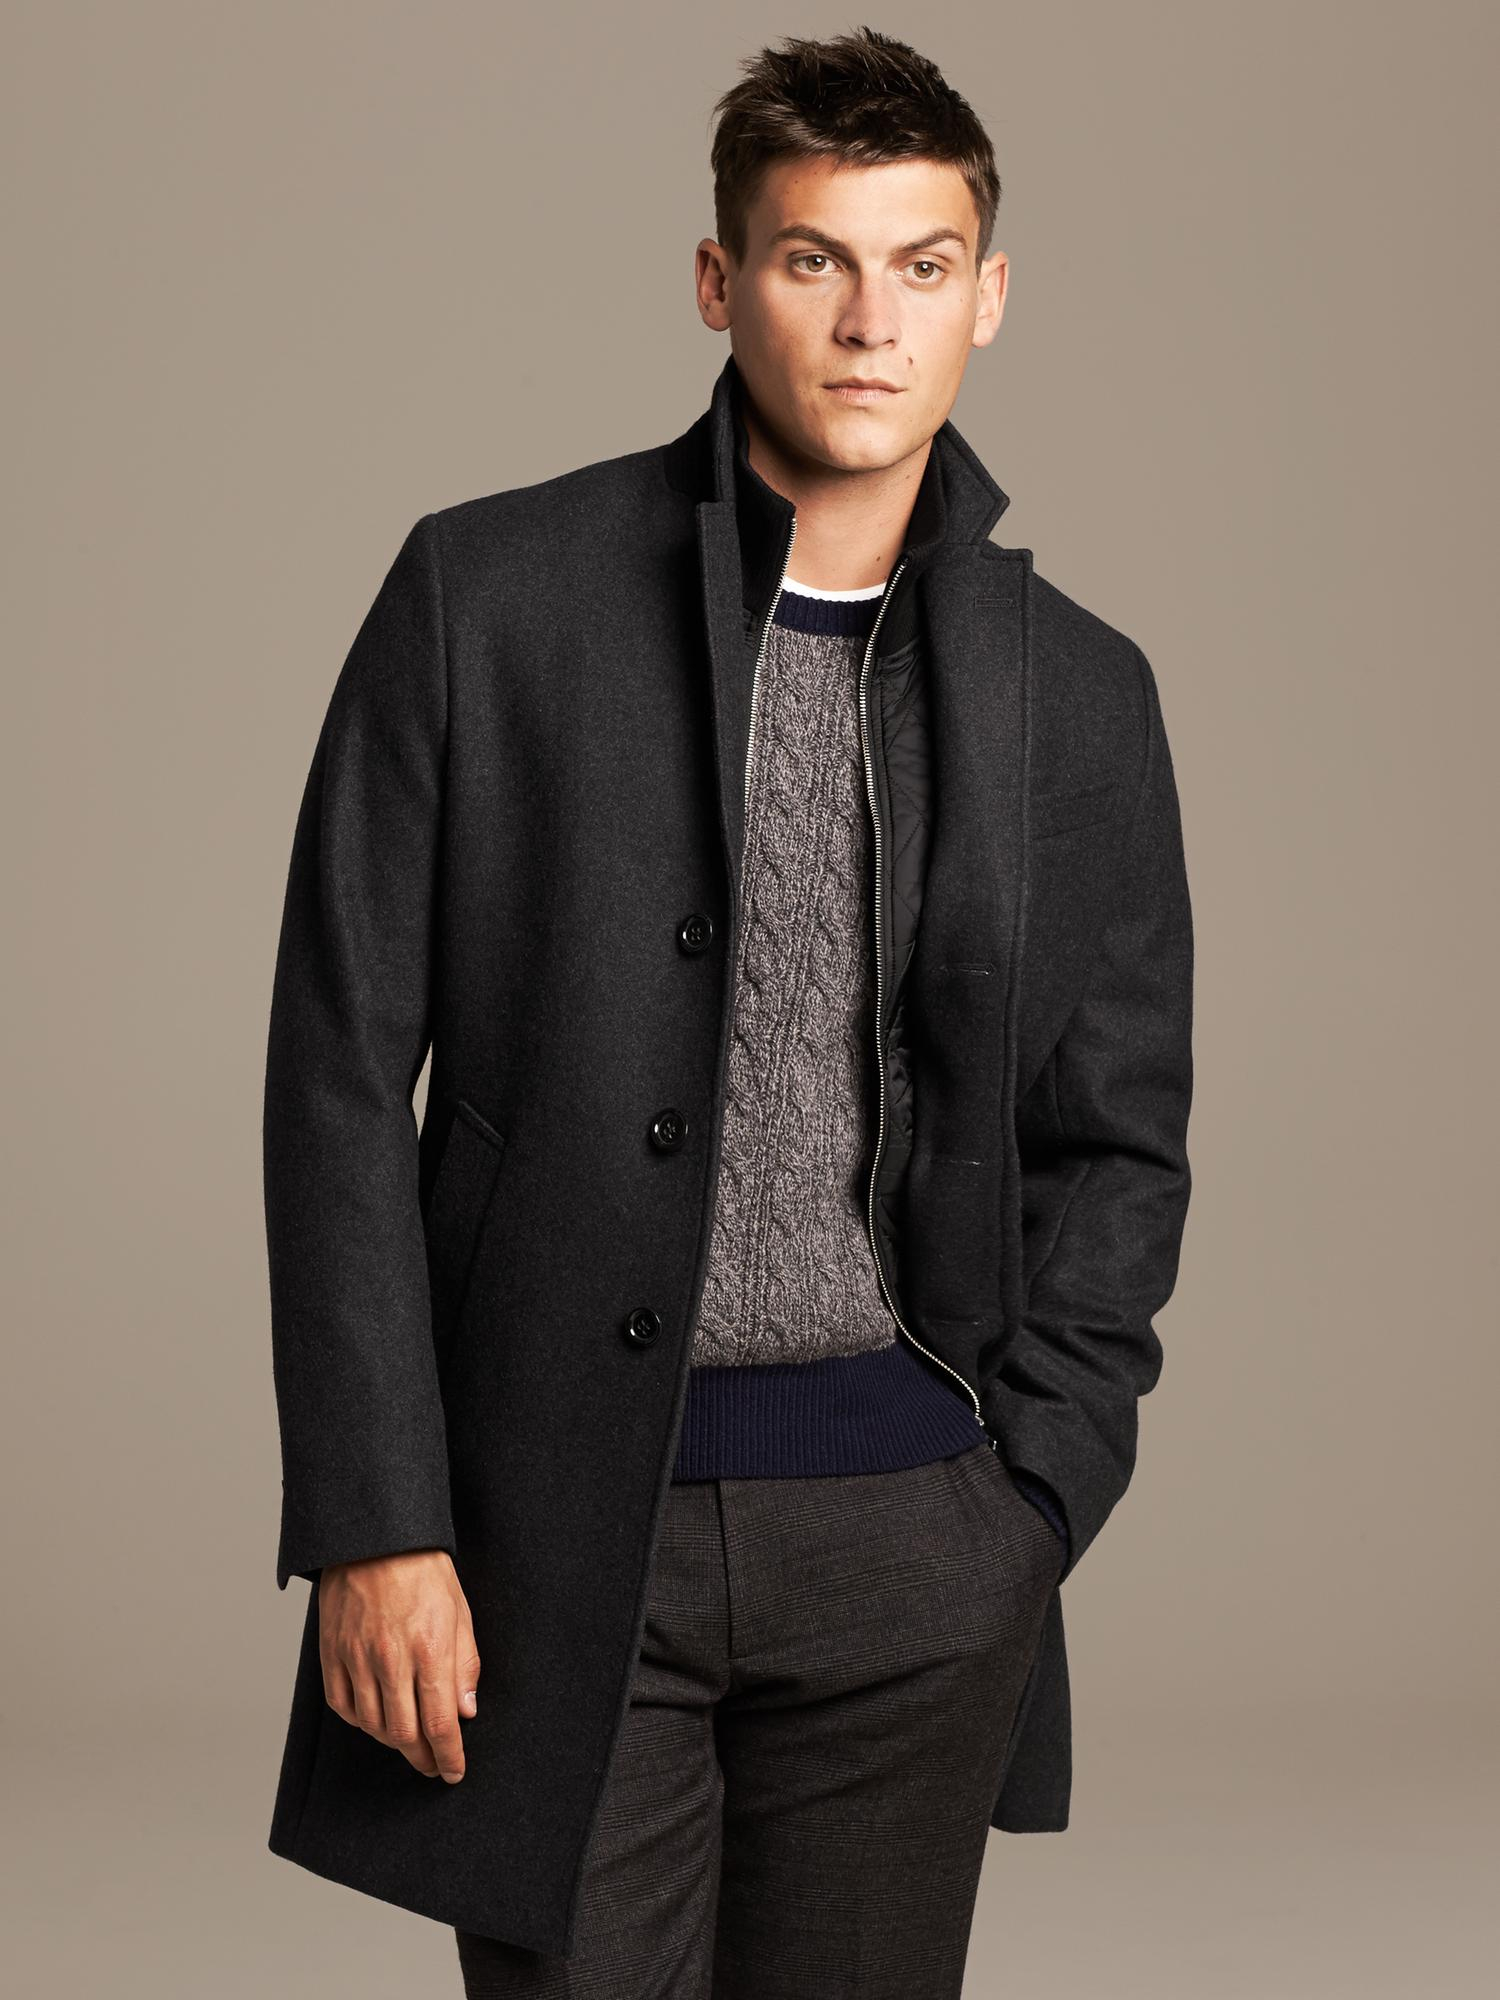 Mens Top Coat | Gommap Blog